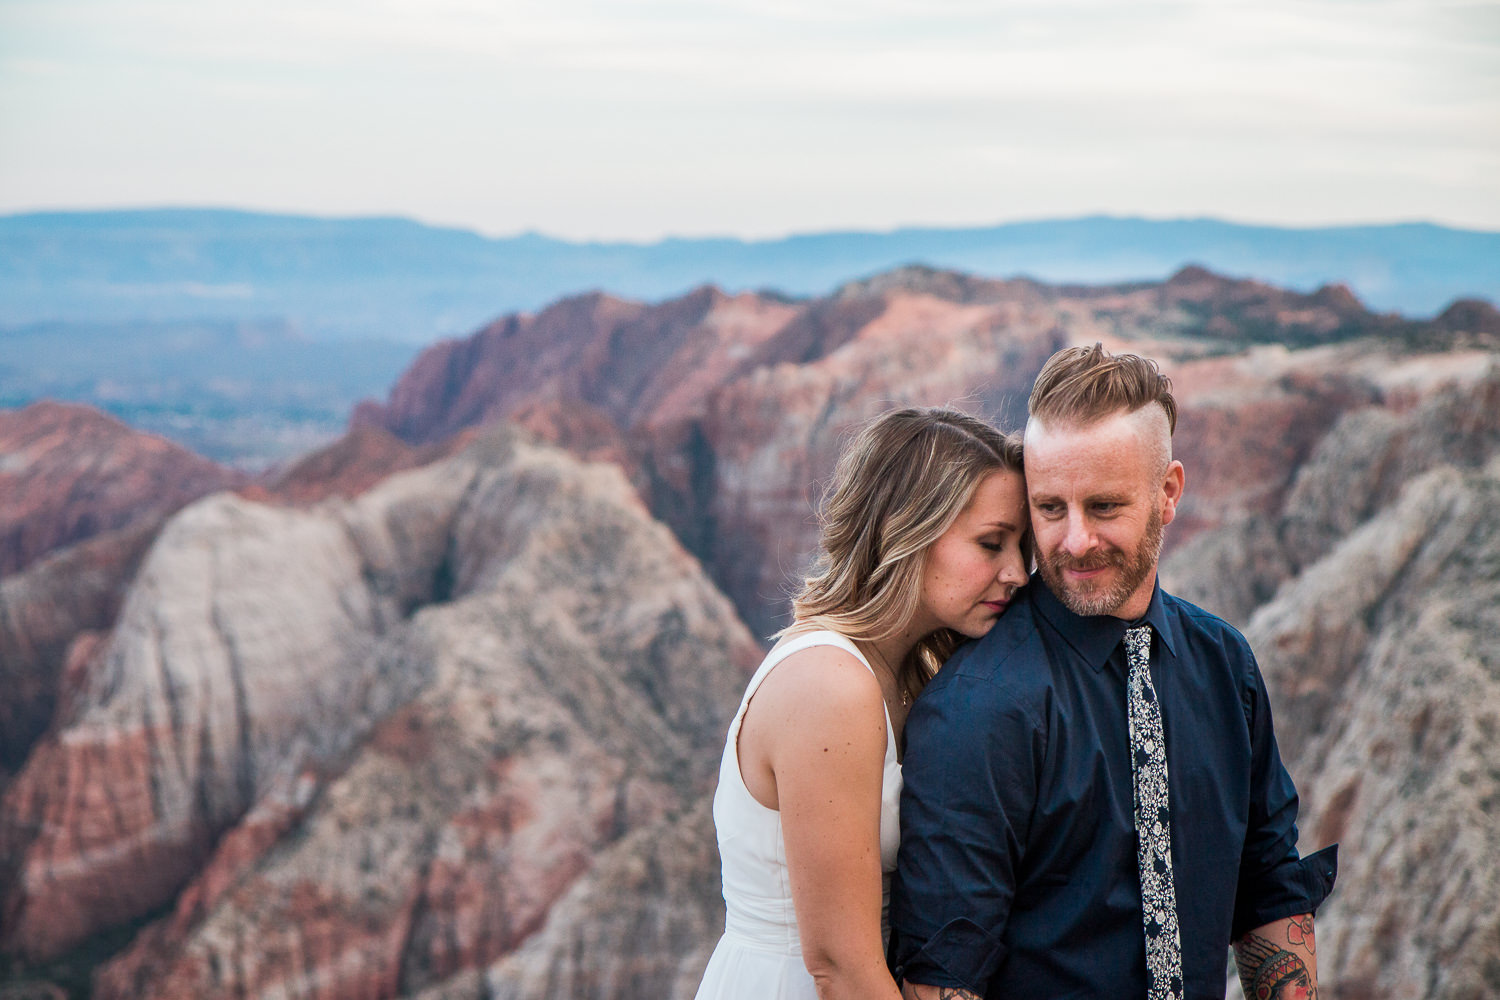 Intimate vow renewal couple imagery epic scenery Kyle and Tori Sheppard